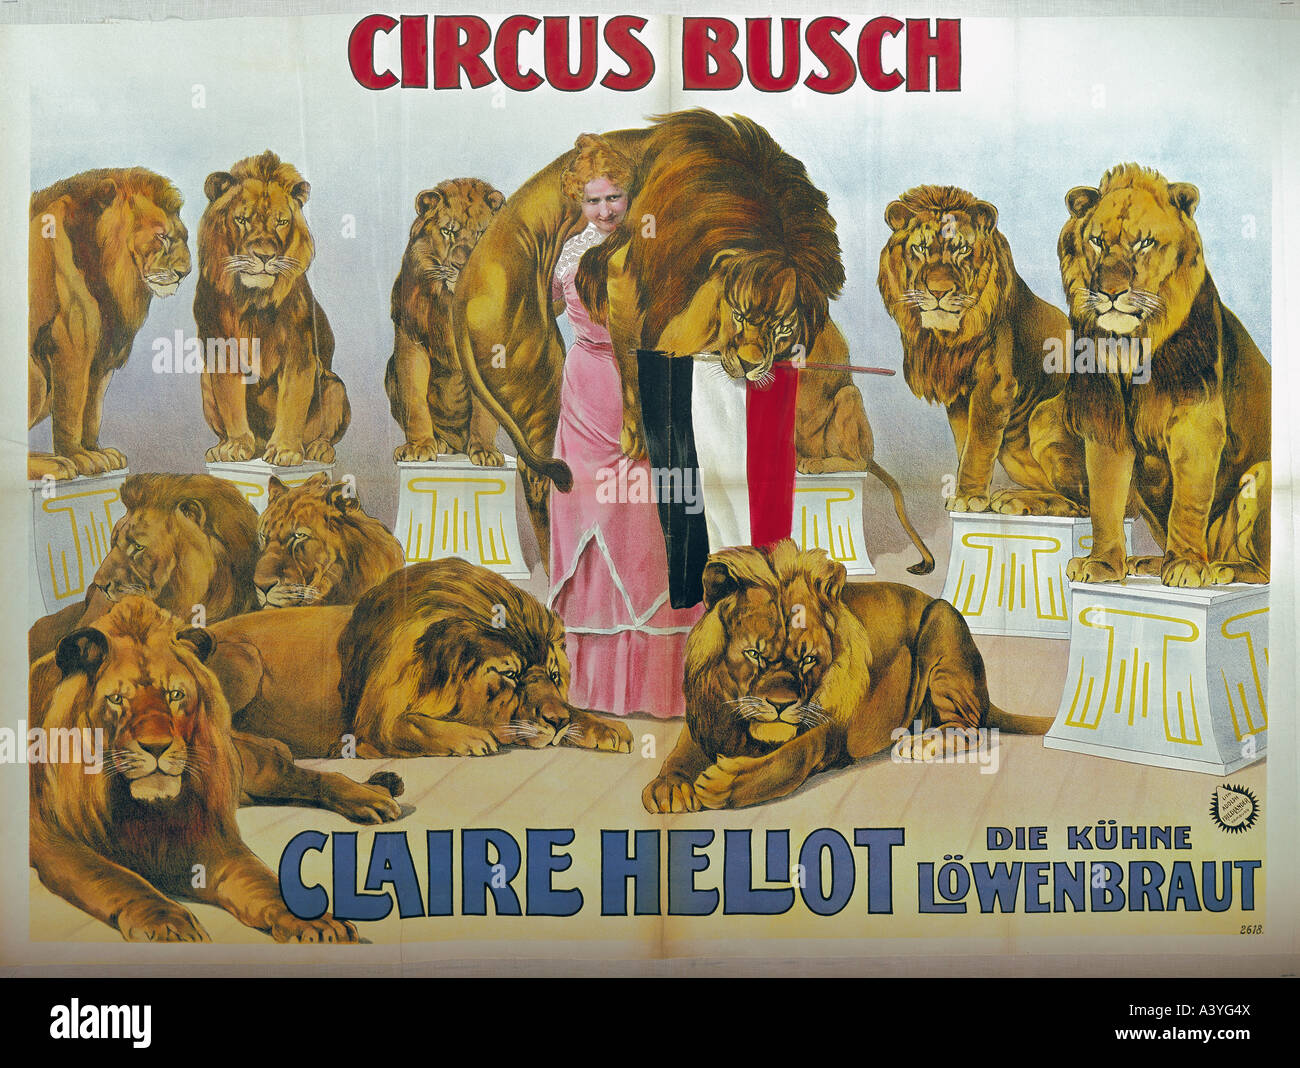 advertising, circus, Circus Busch, Claire Heliot - the courageous lion tamer, colour lithograph, poster, print by - Stock Image